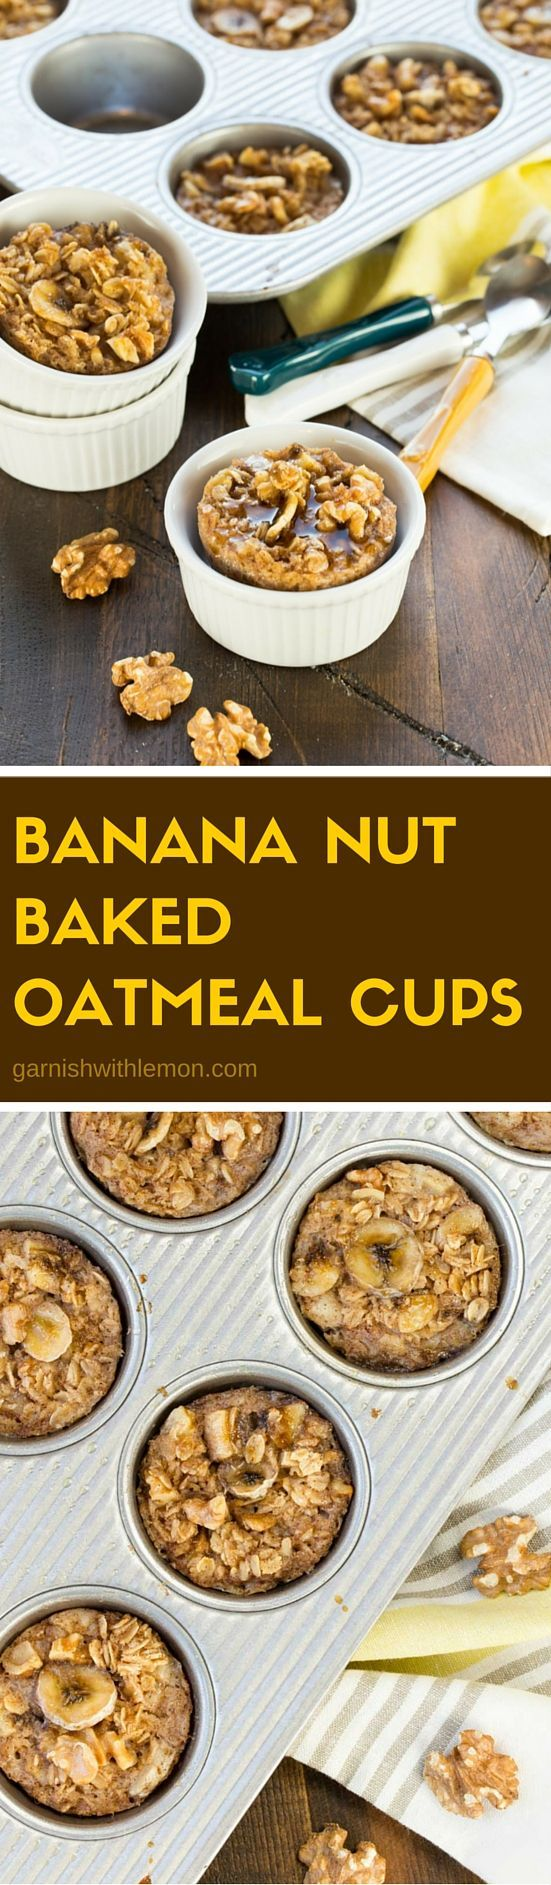 Baked oatmeal cups, Banana nut and Oatmeal cups on Pinterest